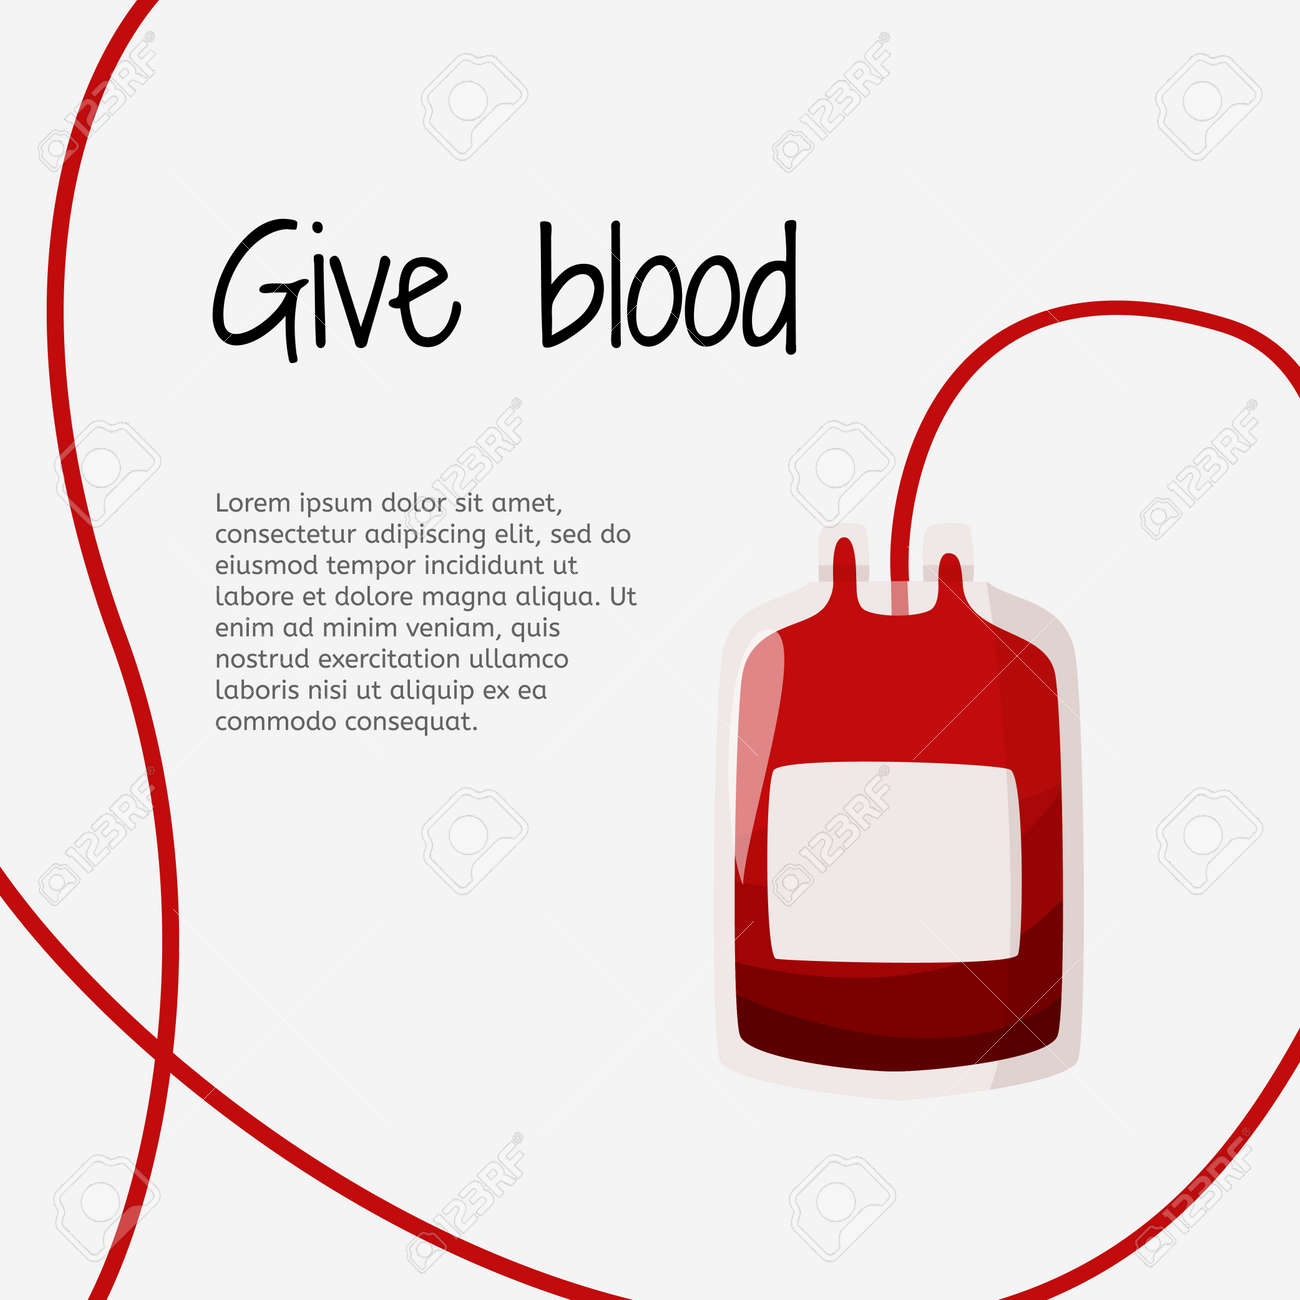 Blood donation graphic design template. Blood container illustration in medical artice. - 148605981